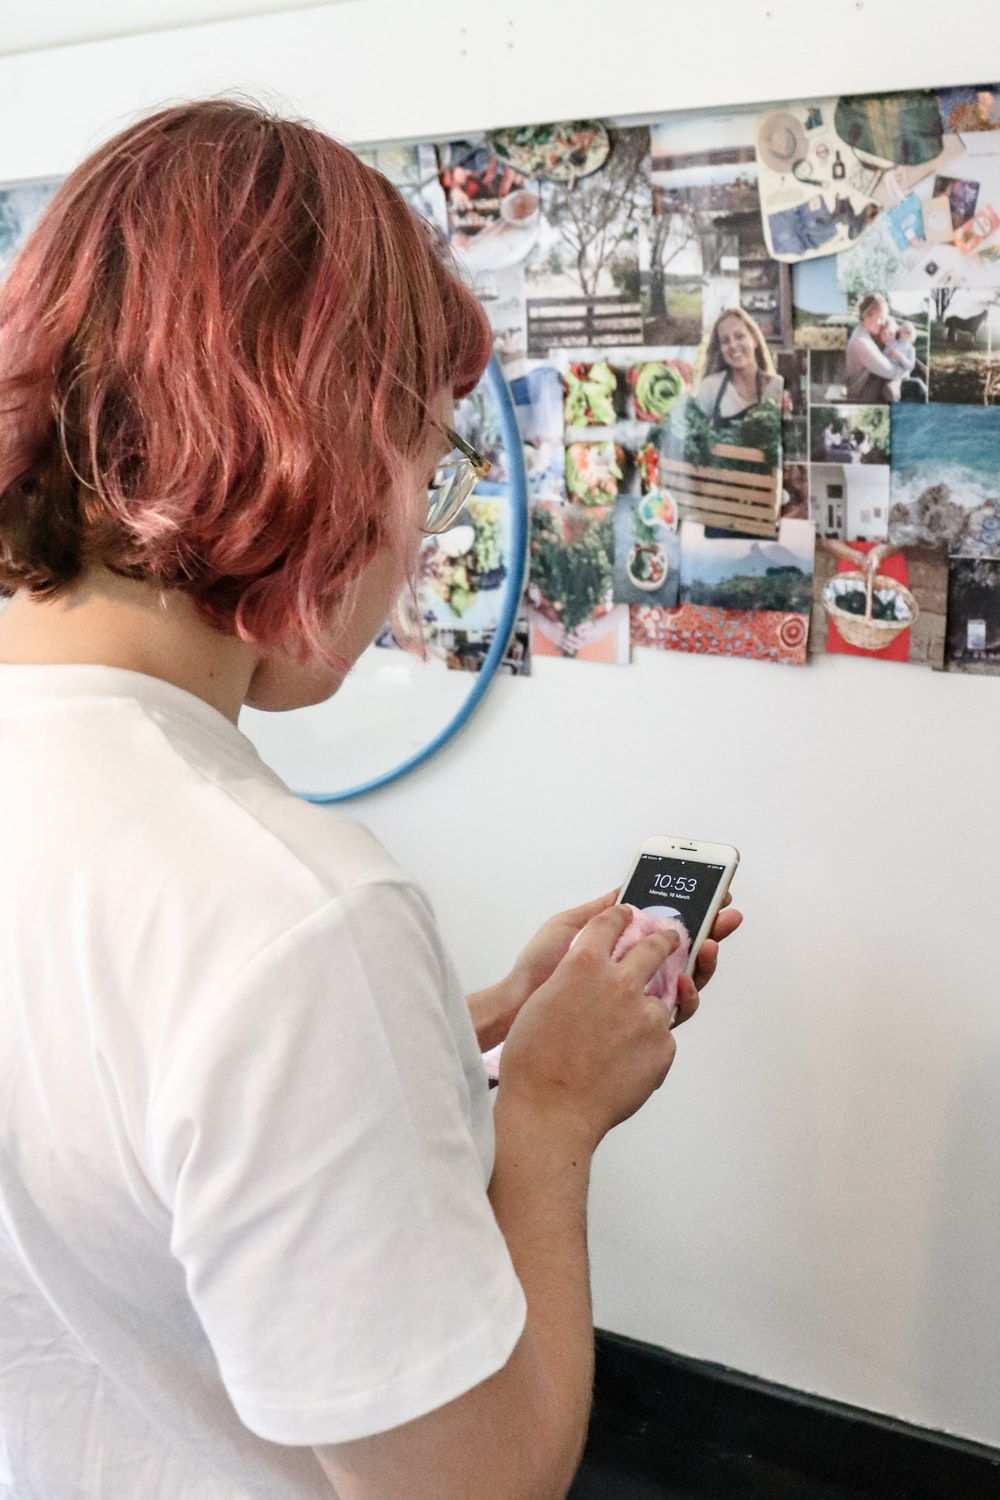 woman in white shirt holding black smartphone